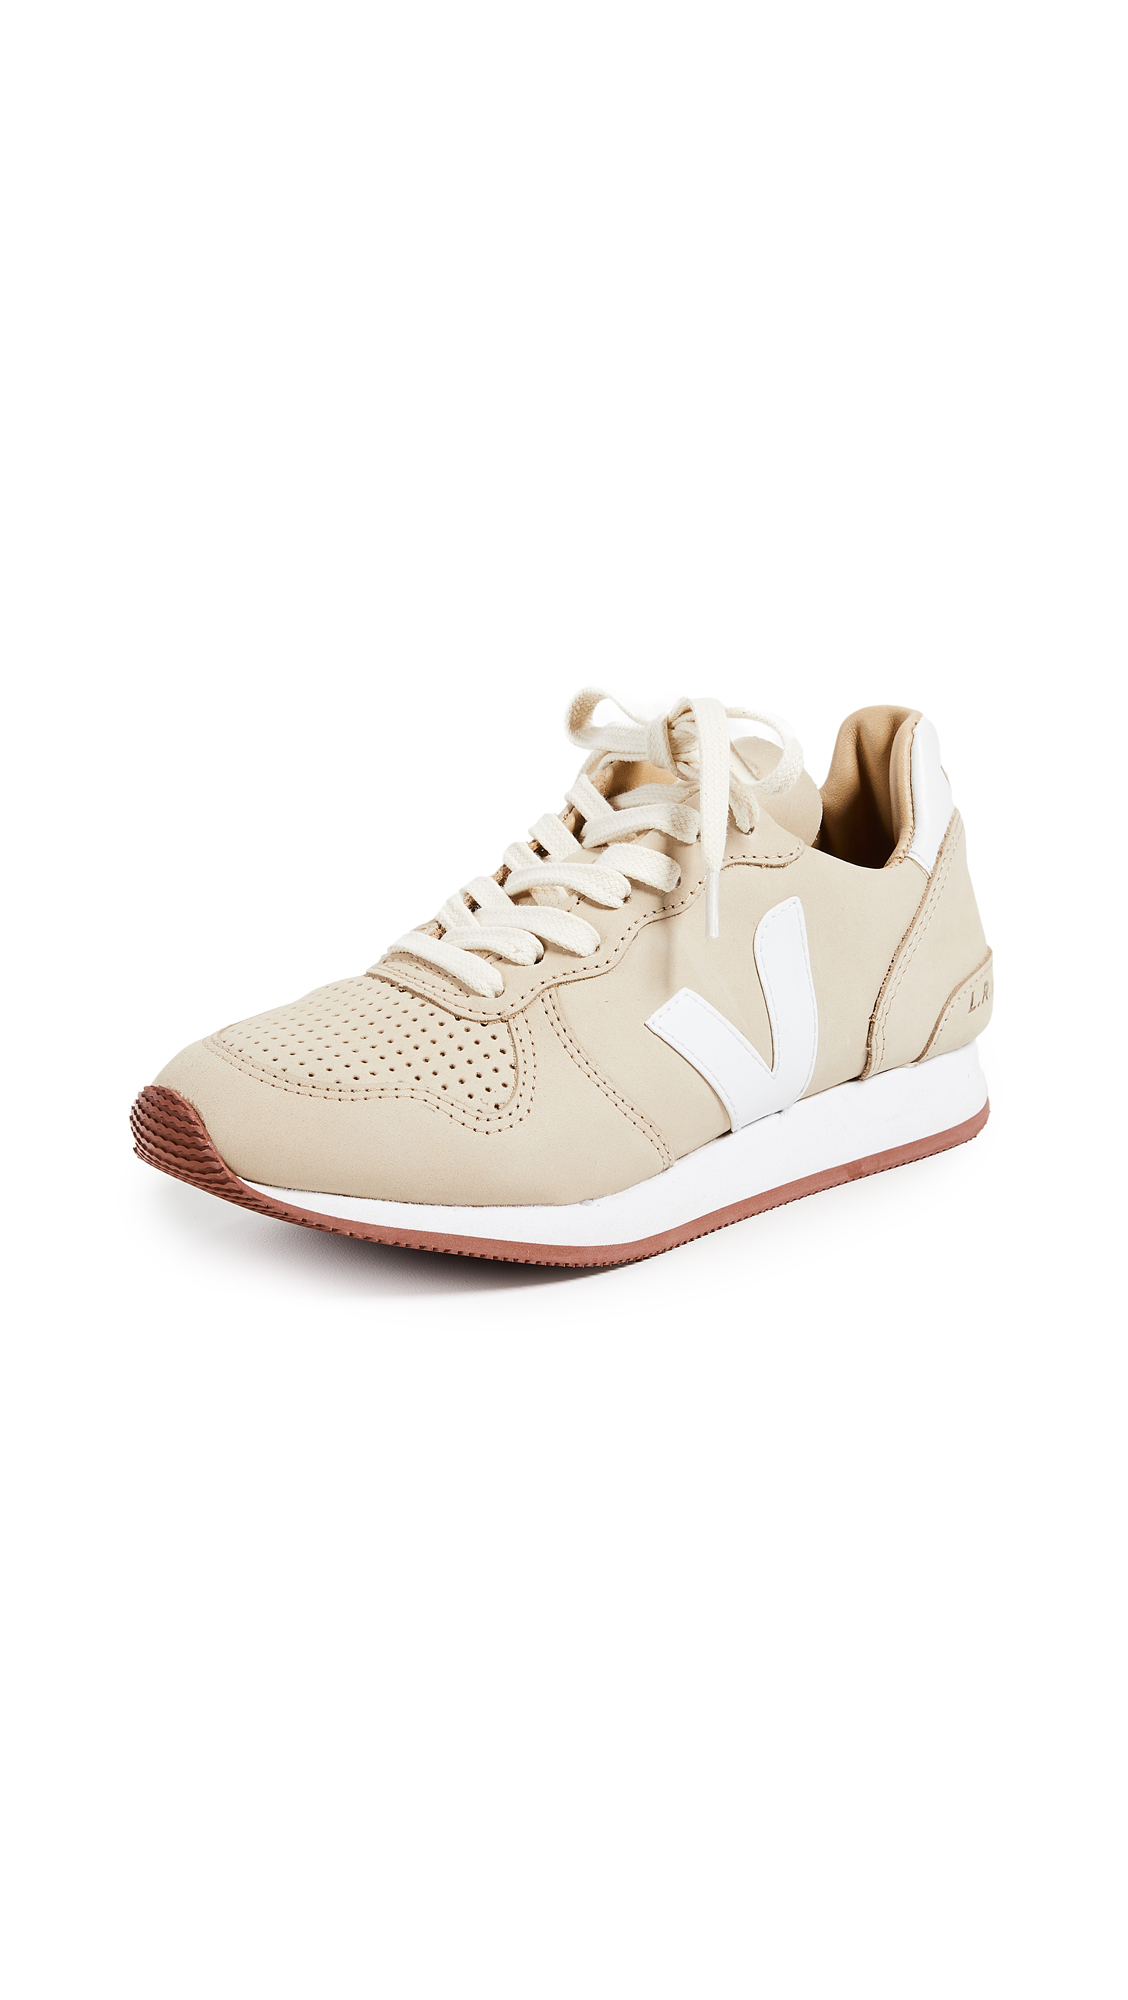 Veja Holiday Bastille Sneakers - Almond/White